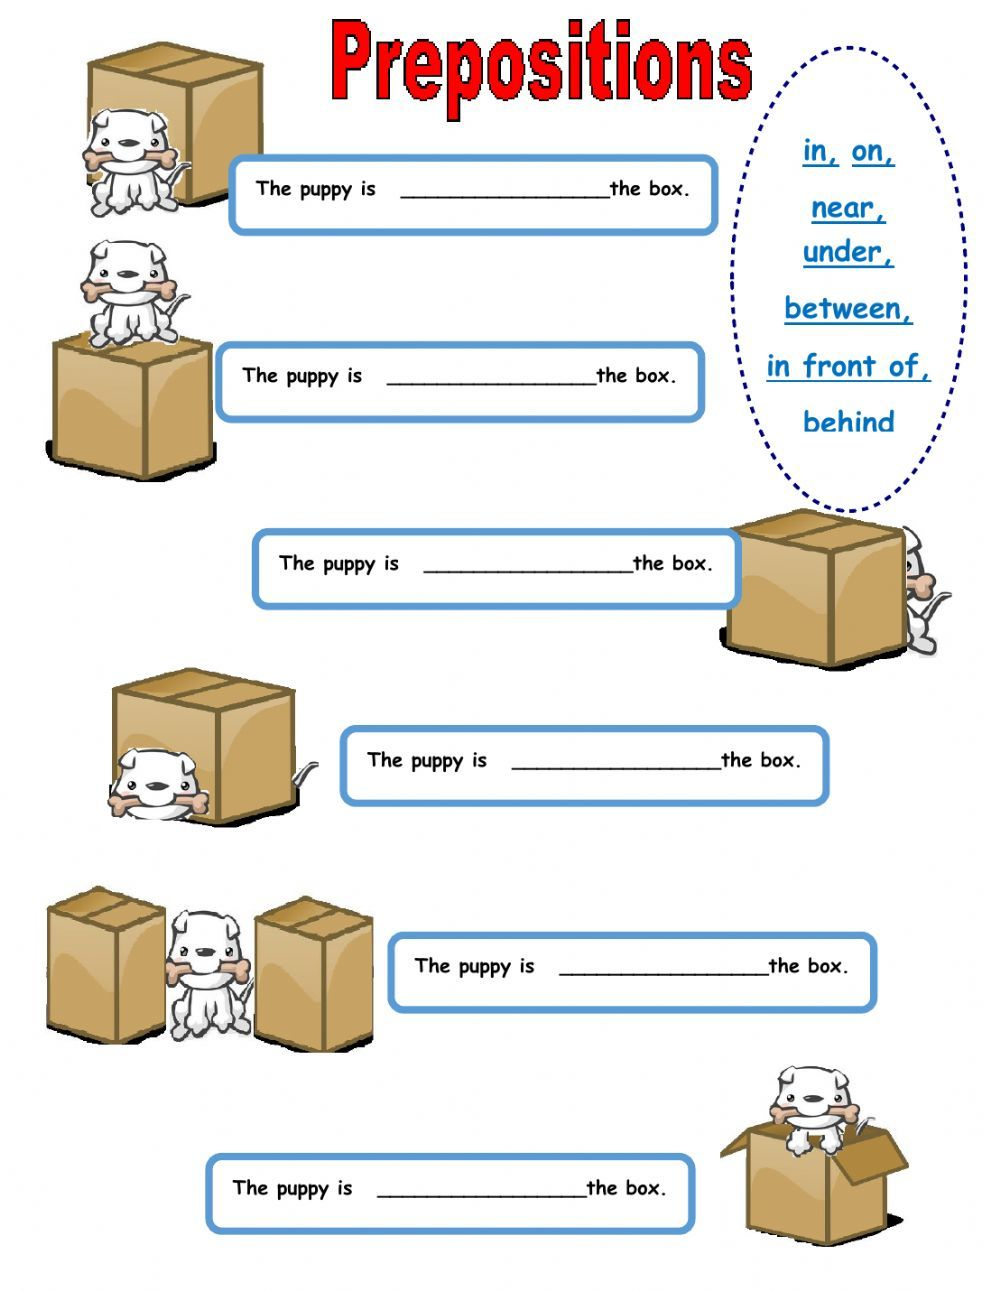 Worksheets Prepositions Worksheets prepositions of place interactive and downloadable worksheet check your answers online or send them to